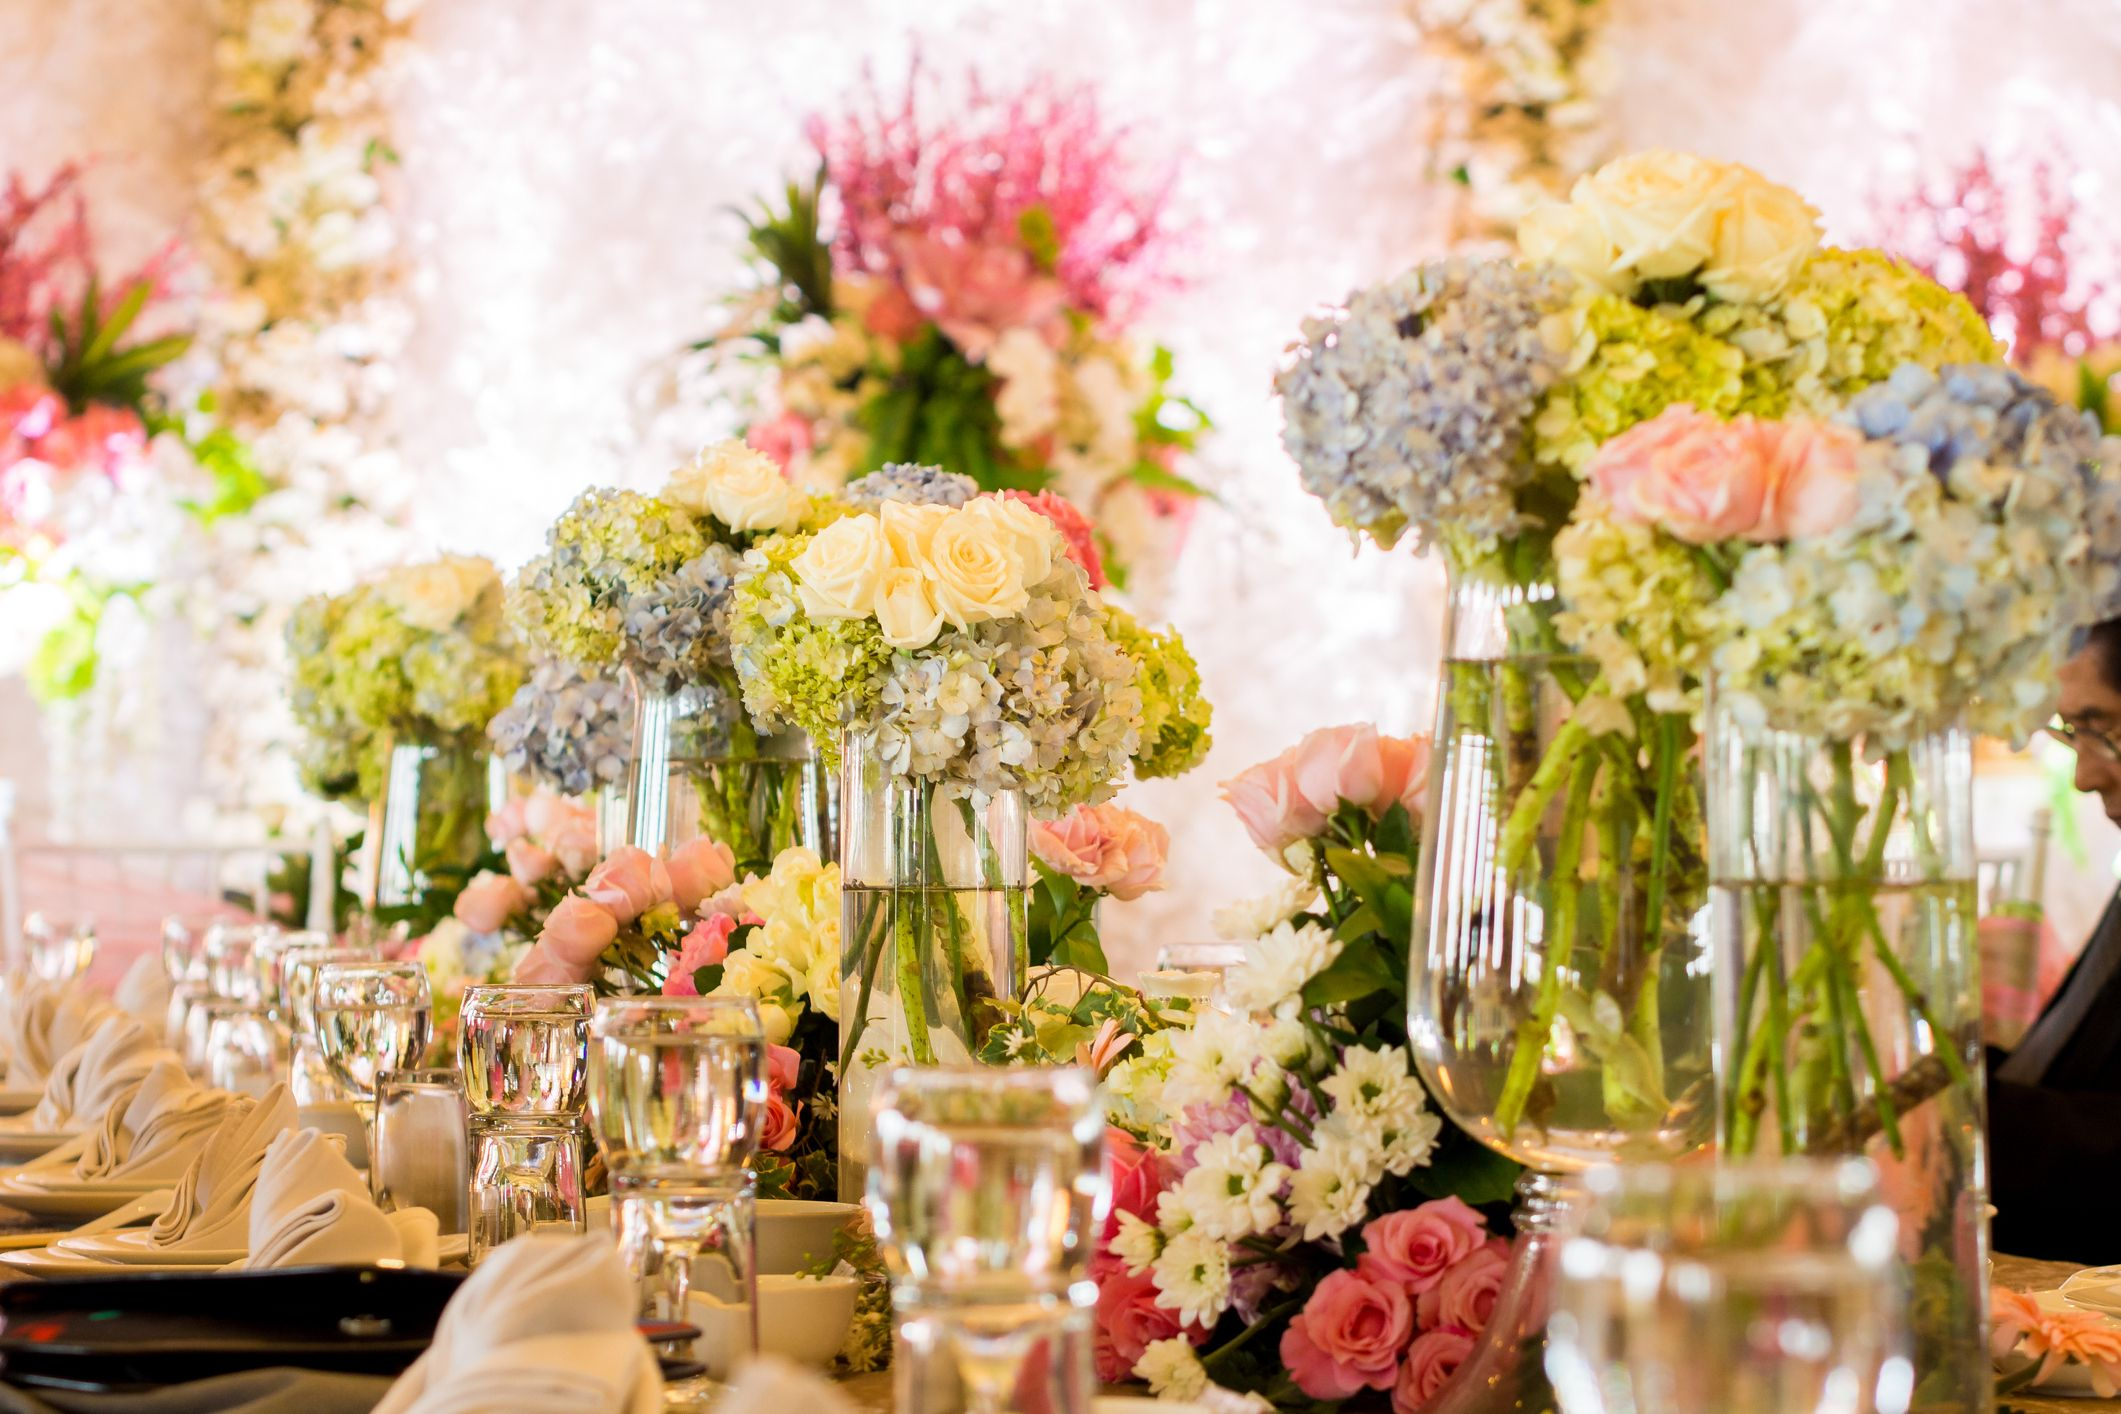 7 clever ways to reuse wedding flowers after the big day